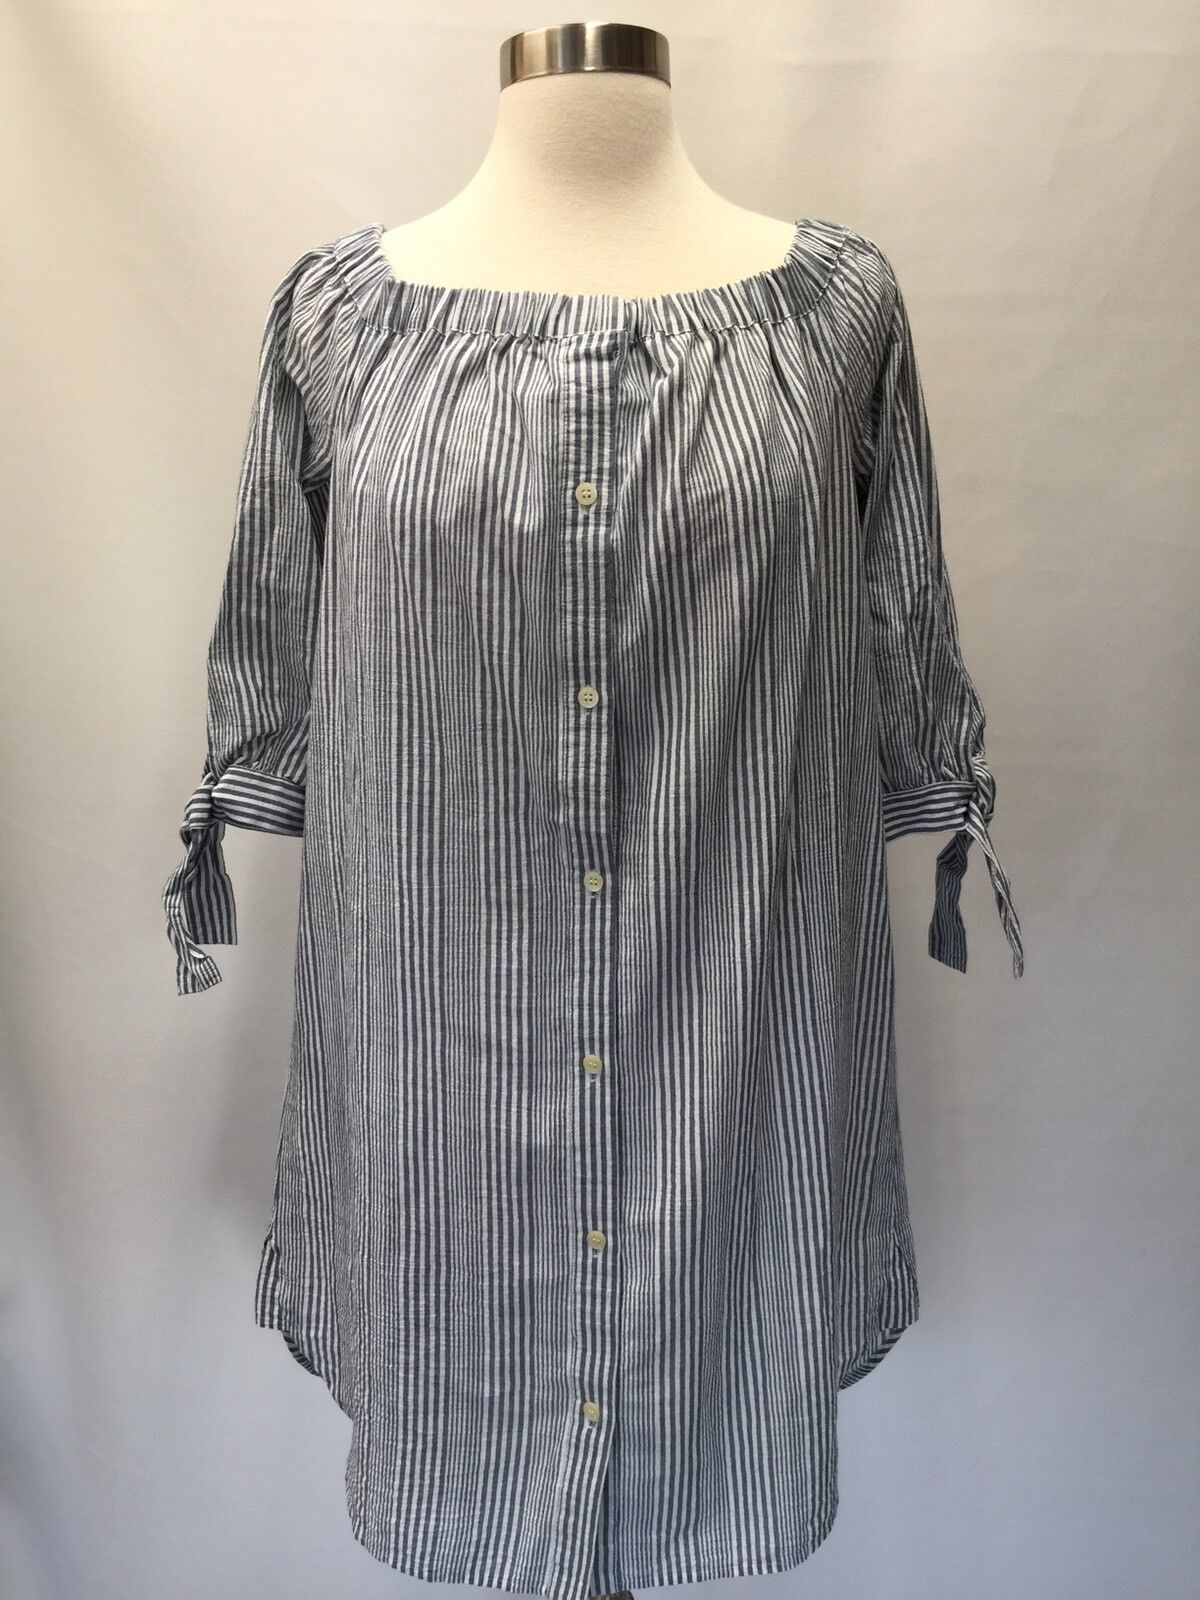 Medewell J Crew Striped Off The Shoulder Shirt Dress Size M  G5656 Soldout